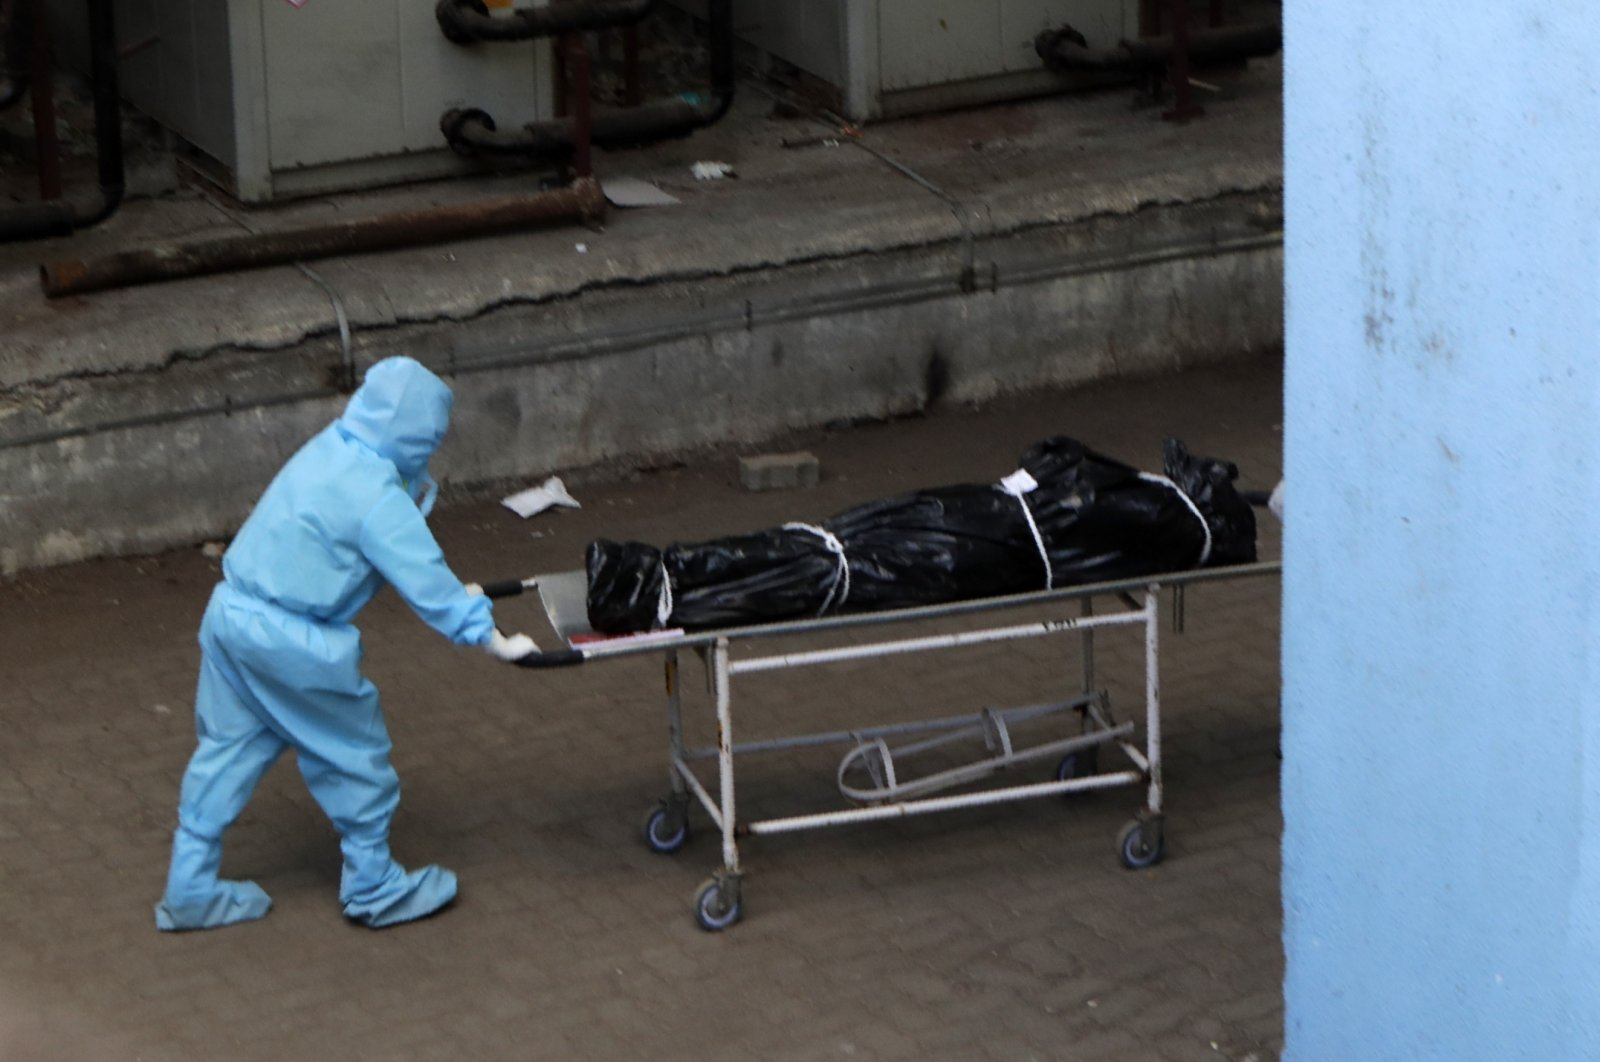 Hospital staff carries the body of a person who died of COVID-19 to a morgue in Mumbai, India, May 29, 2020. (AP Photo)